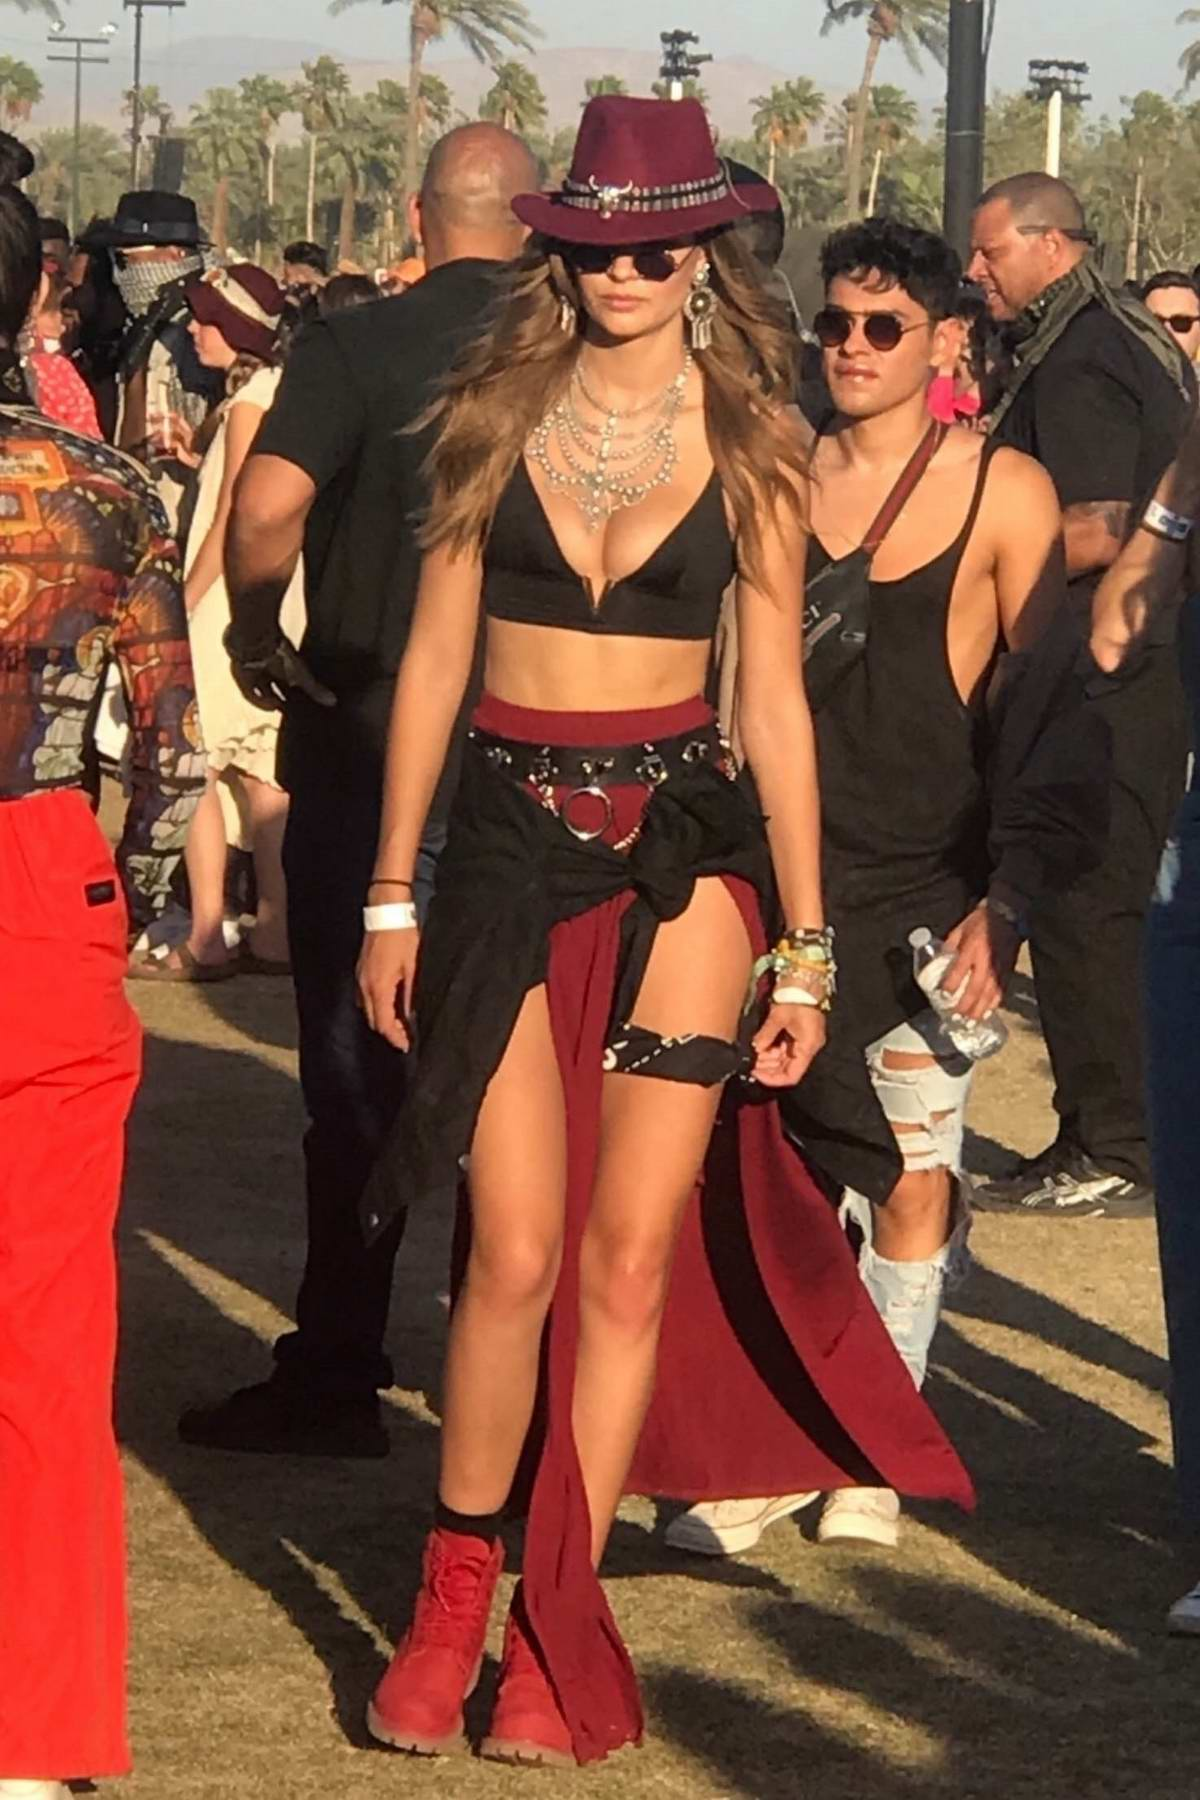 Josephine Skriver watches Bad Bunny and stops to take pictures with fans during Weekend 2 of Coachella in Indio, California